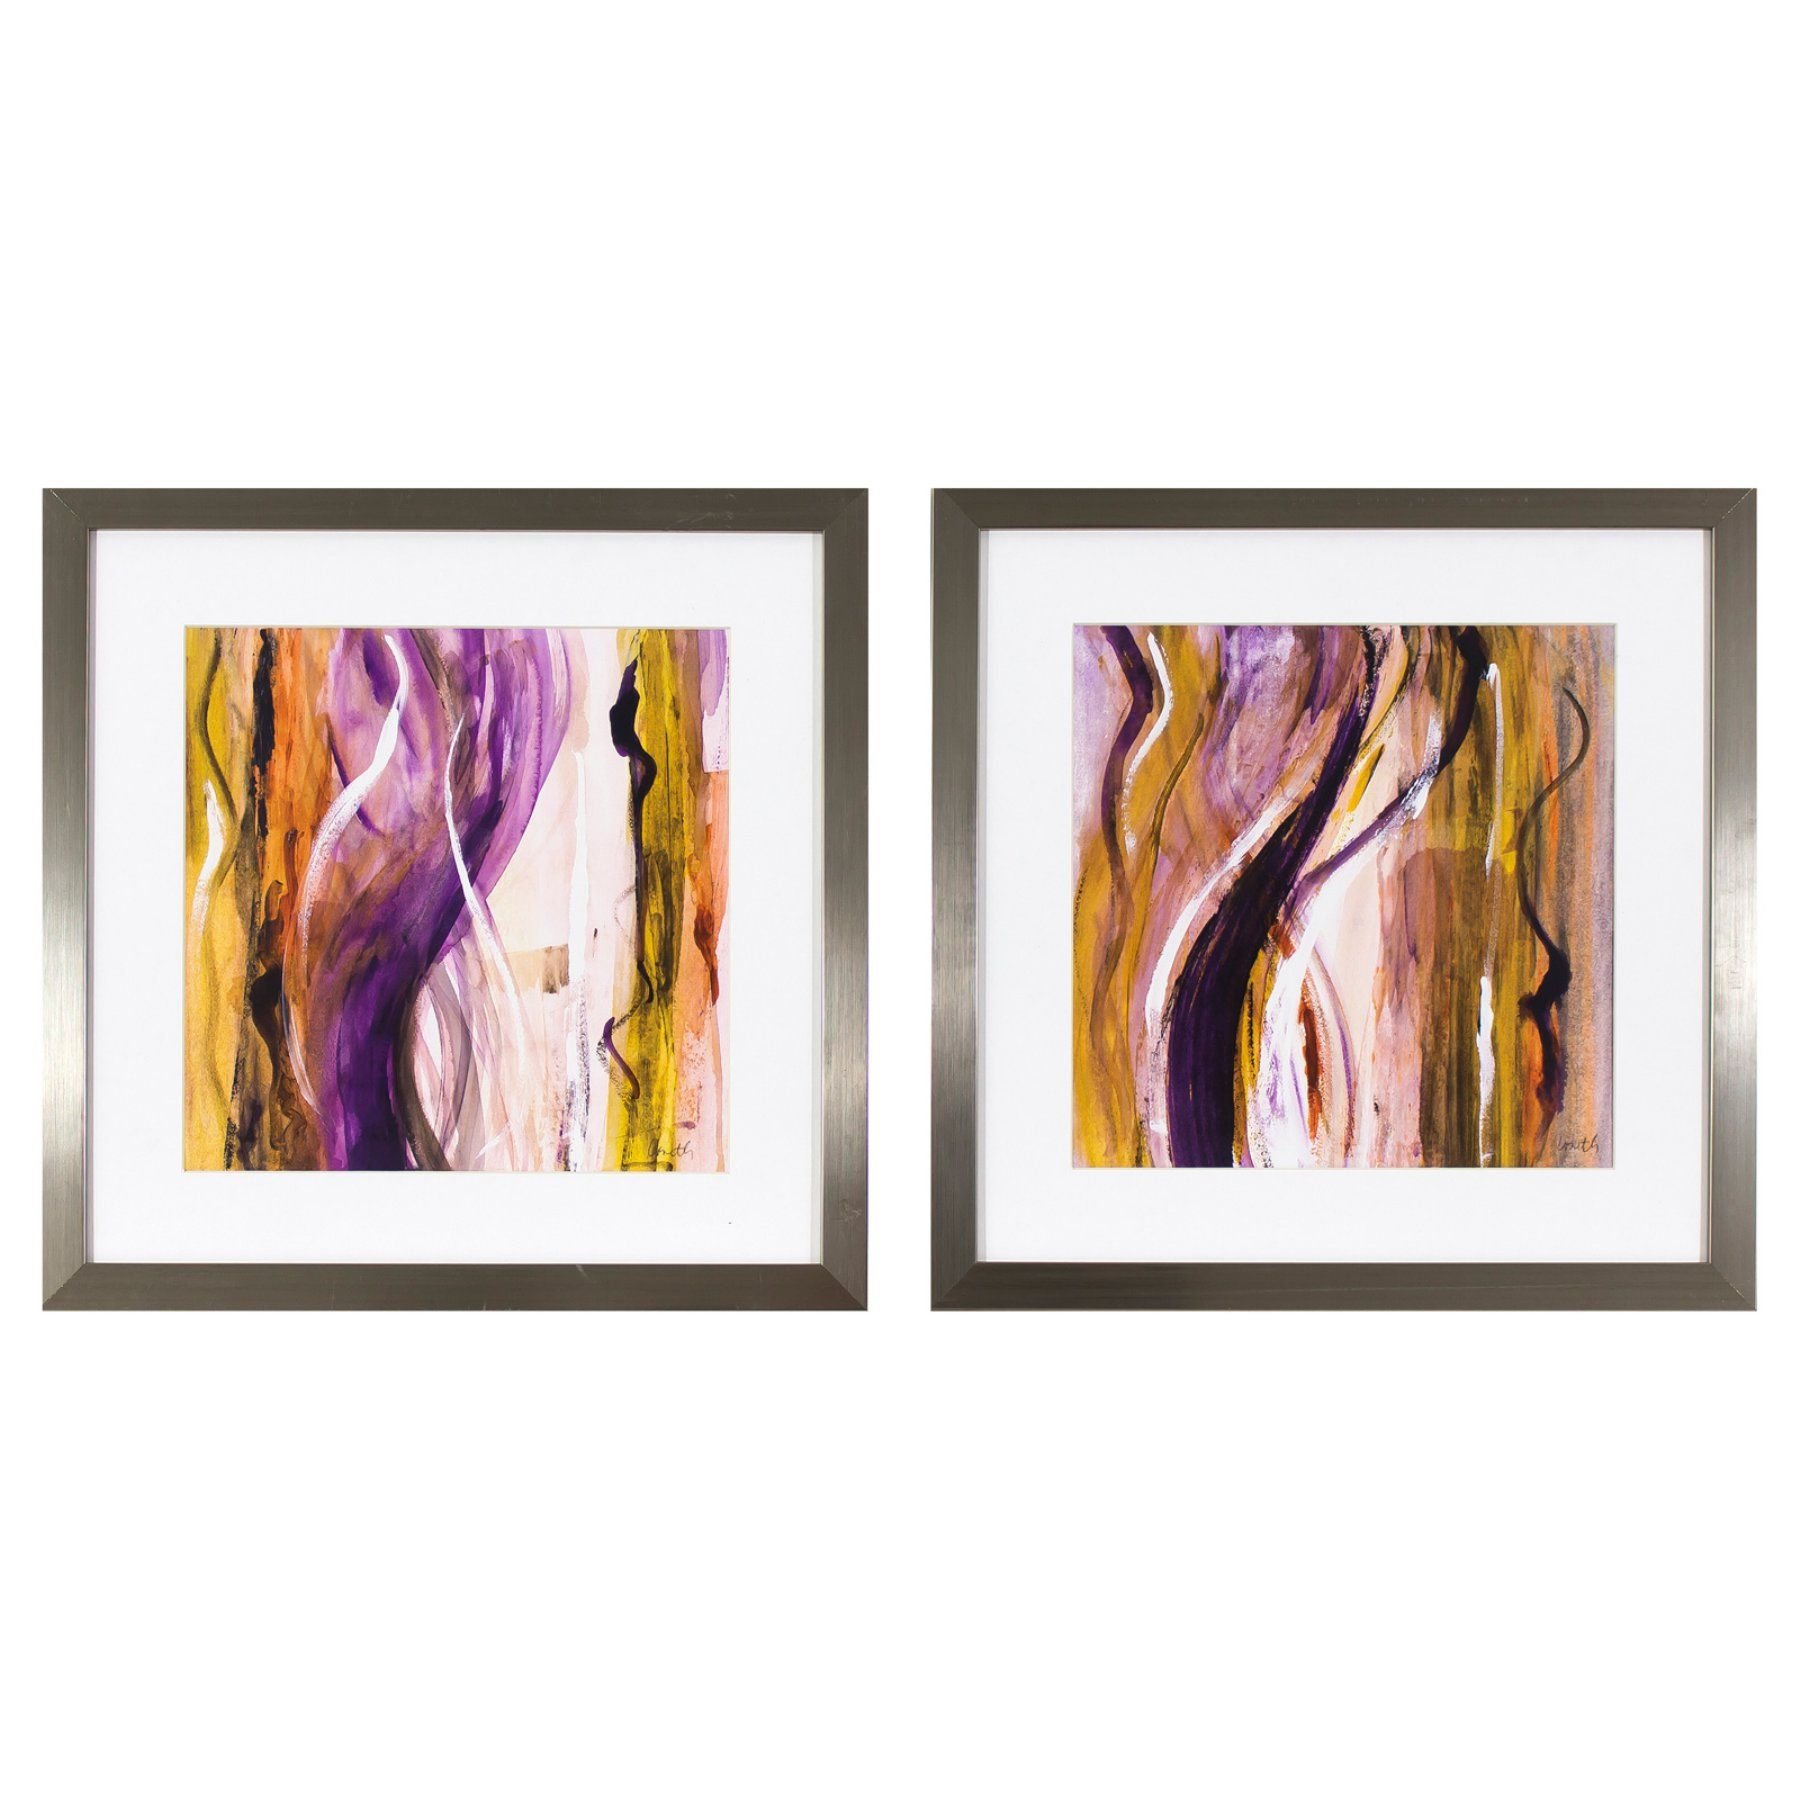 Decor Therapy Fuchsia Strokes in Stainless Steel Frame - Set of 2 - 1606-8231LOW